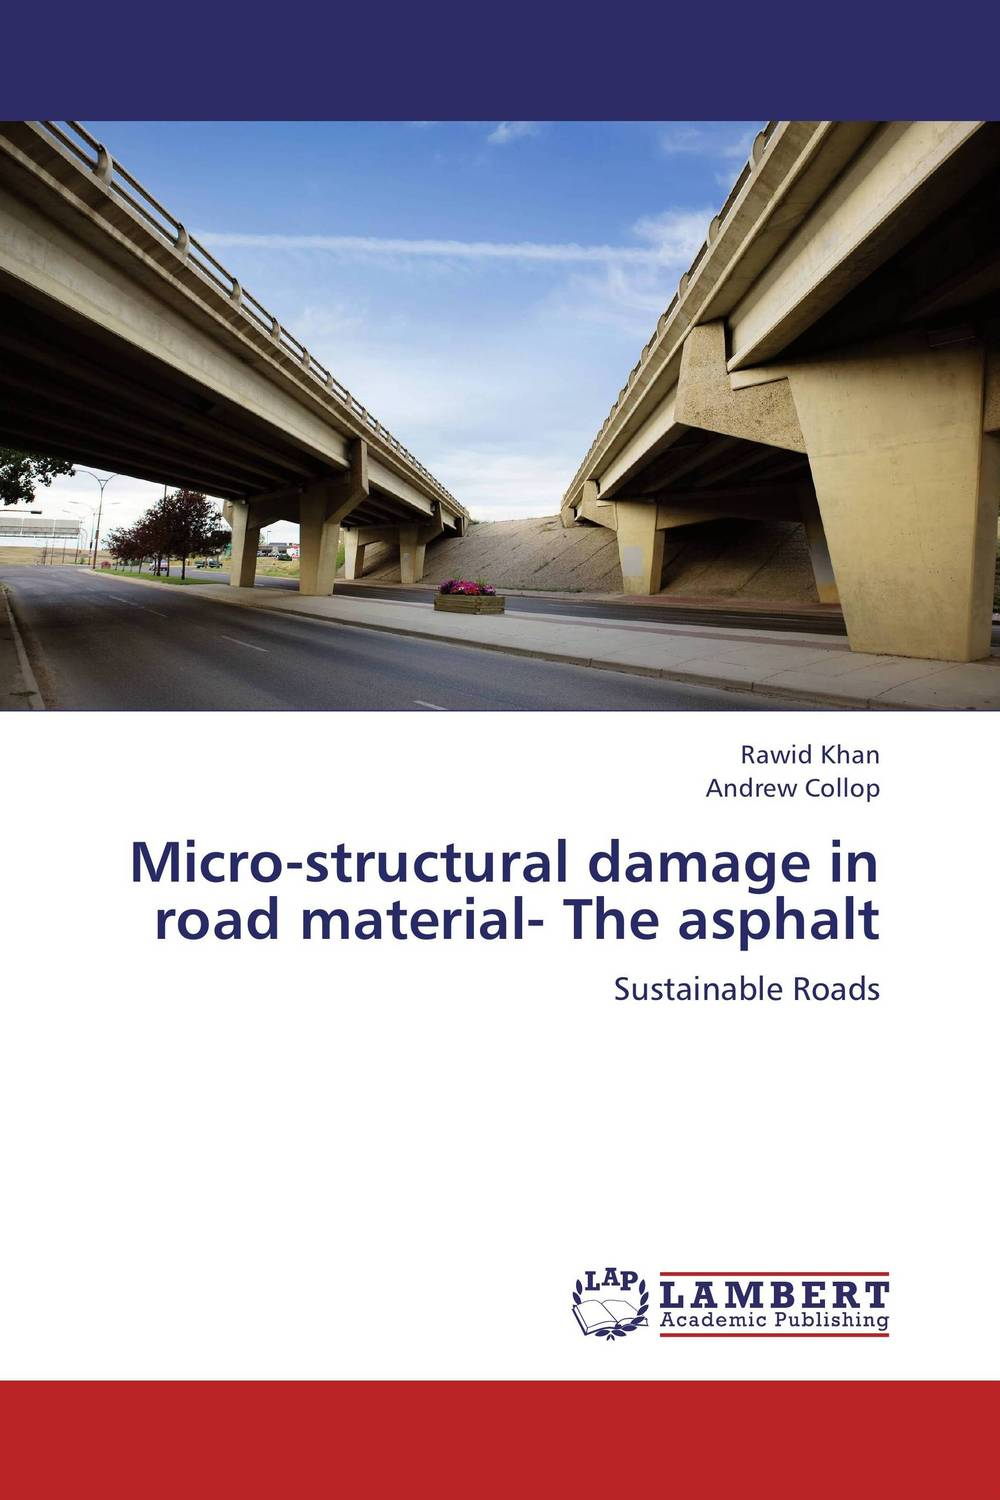 Micro-structural damage in road material- The asphalt fatigue analysis of asphalt concrete based on crack development